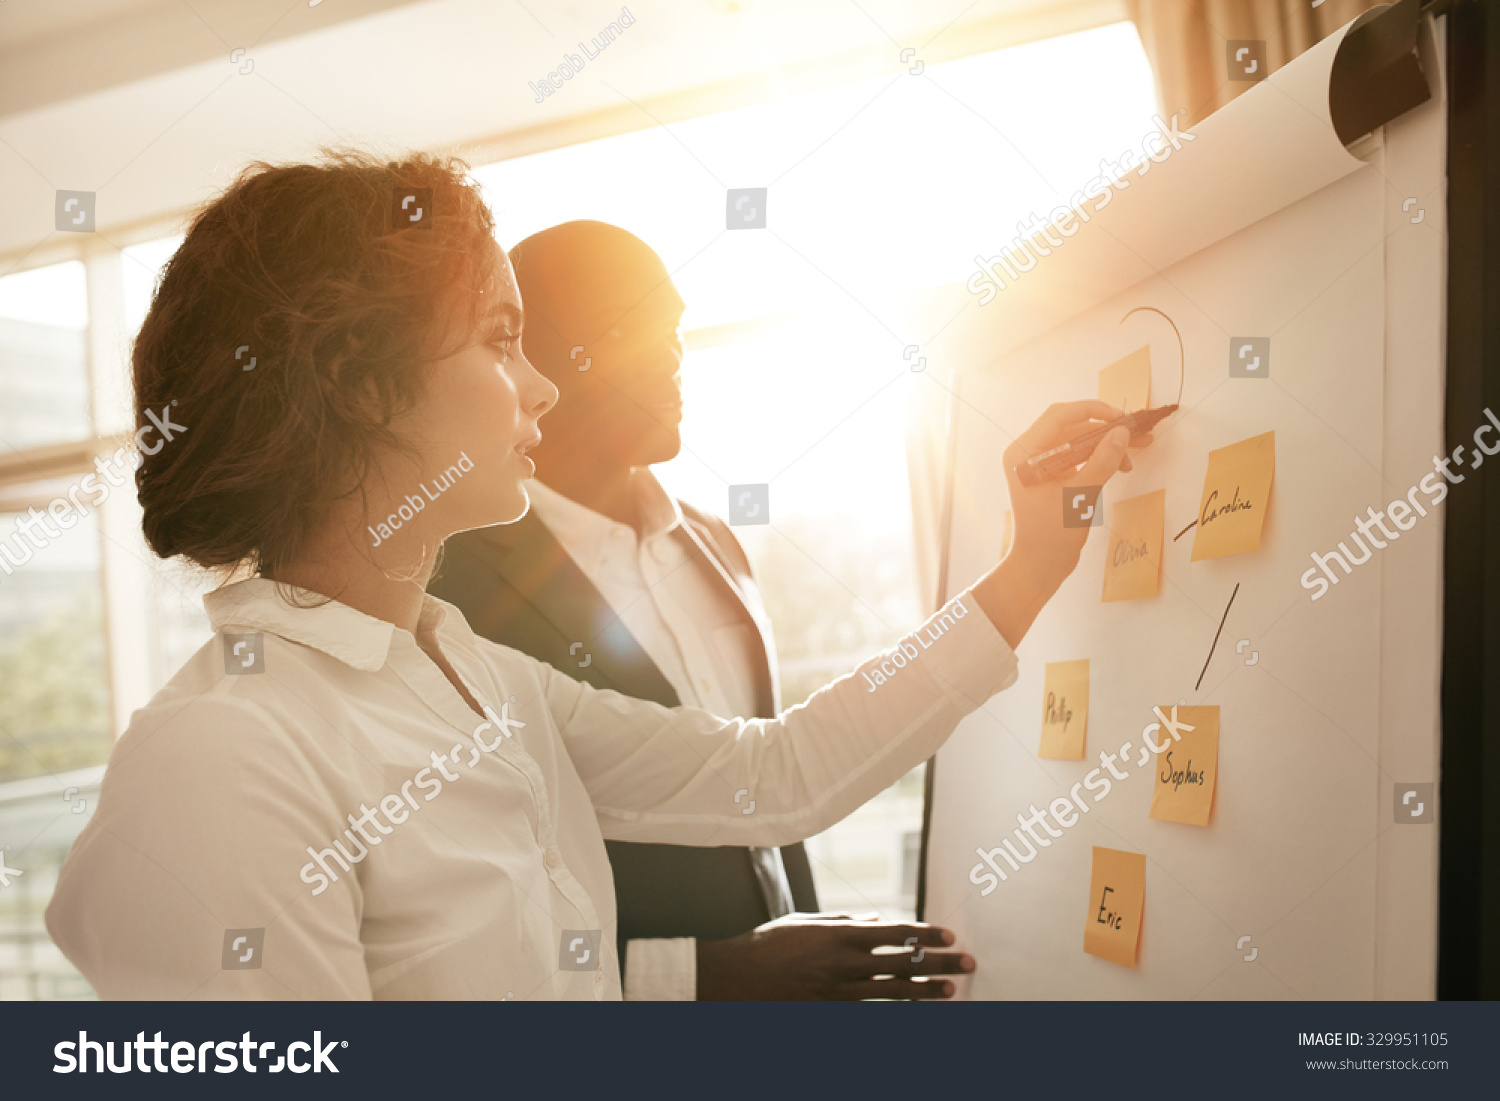 Two Young Associates Working Together Drawing Stock Photo ...